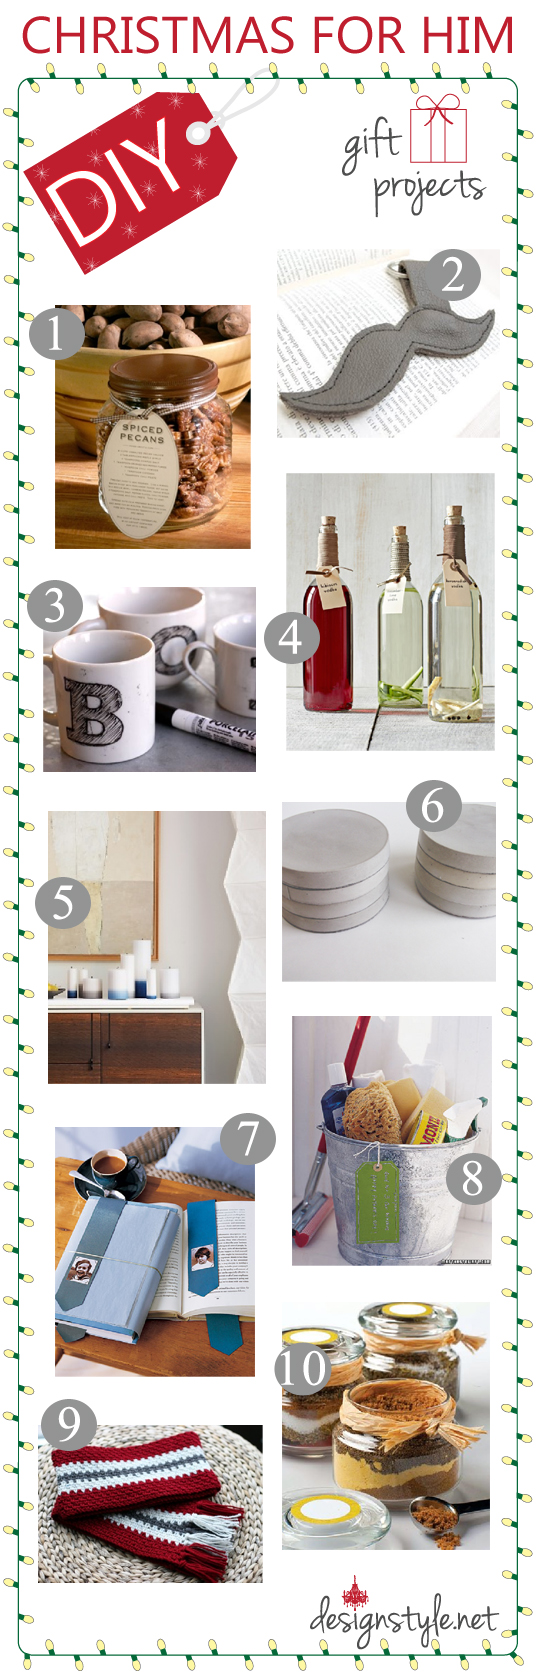 diy christmas gift ideas for her him design style